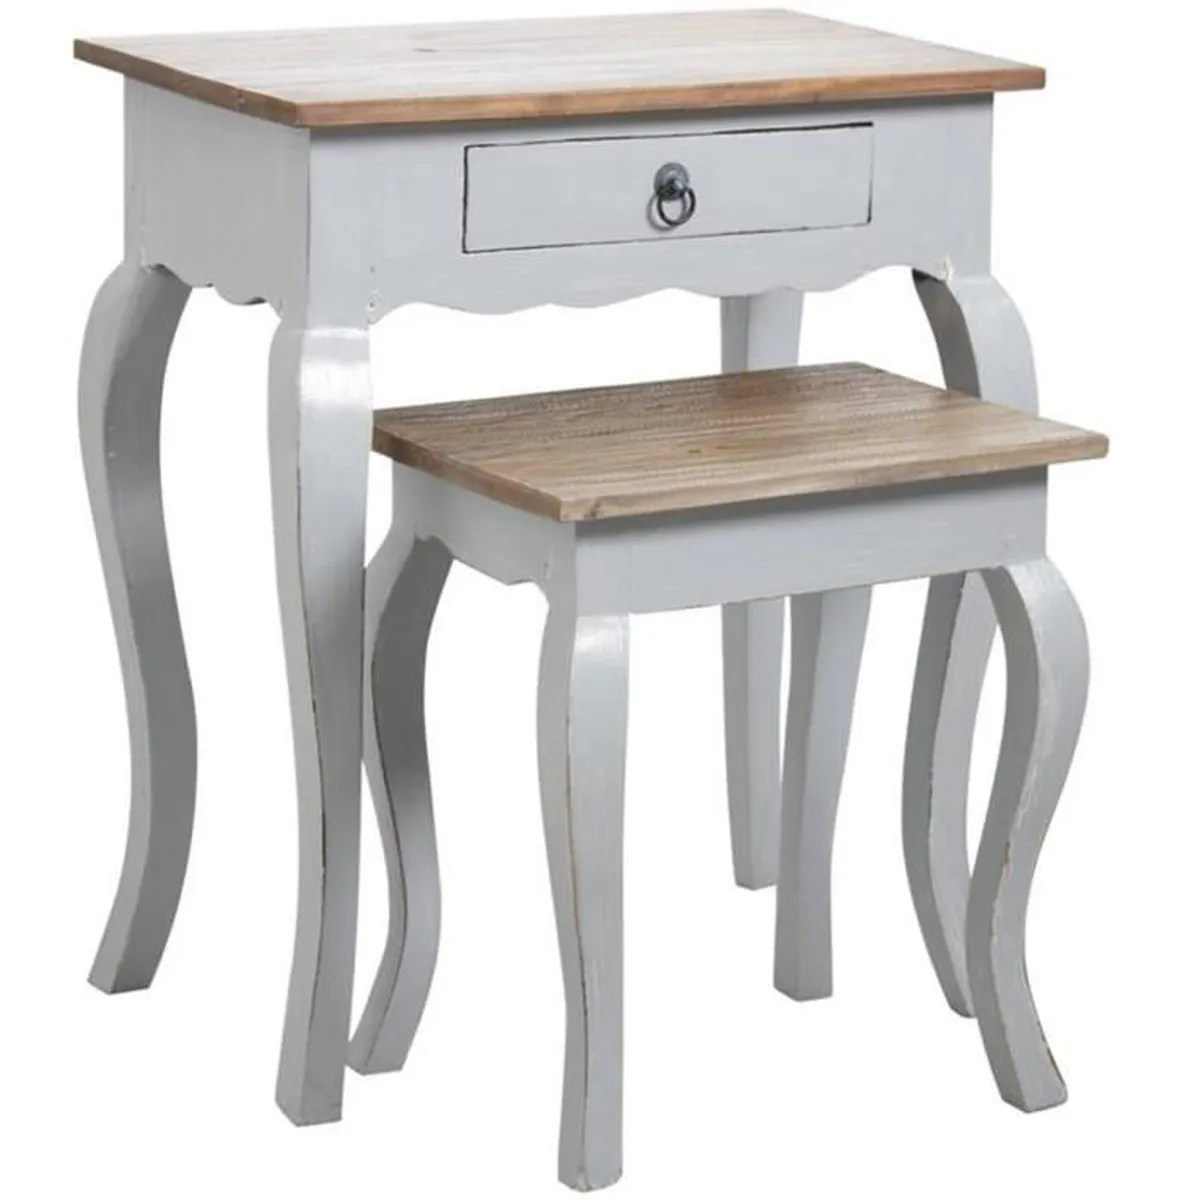 Table Gigogne En Bois Lot De 2 Tables Gigognes En Bois Gris Antique